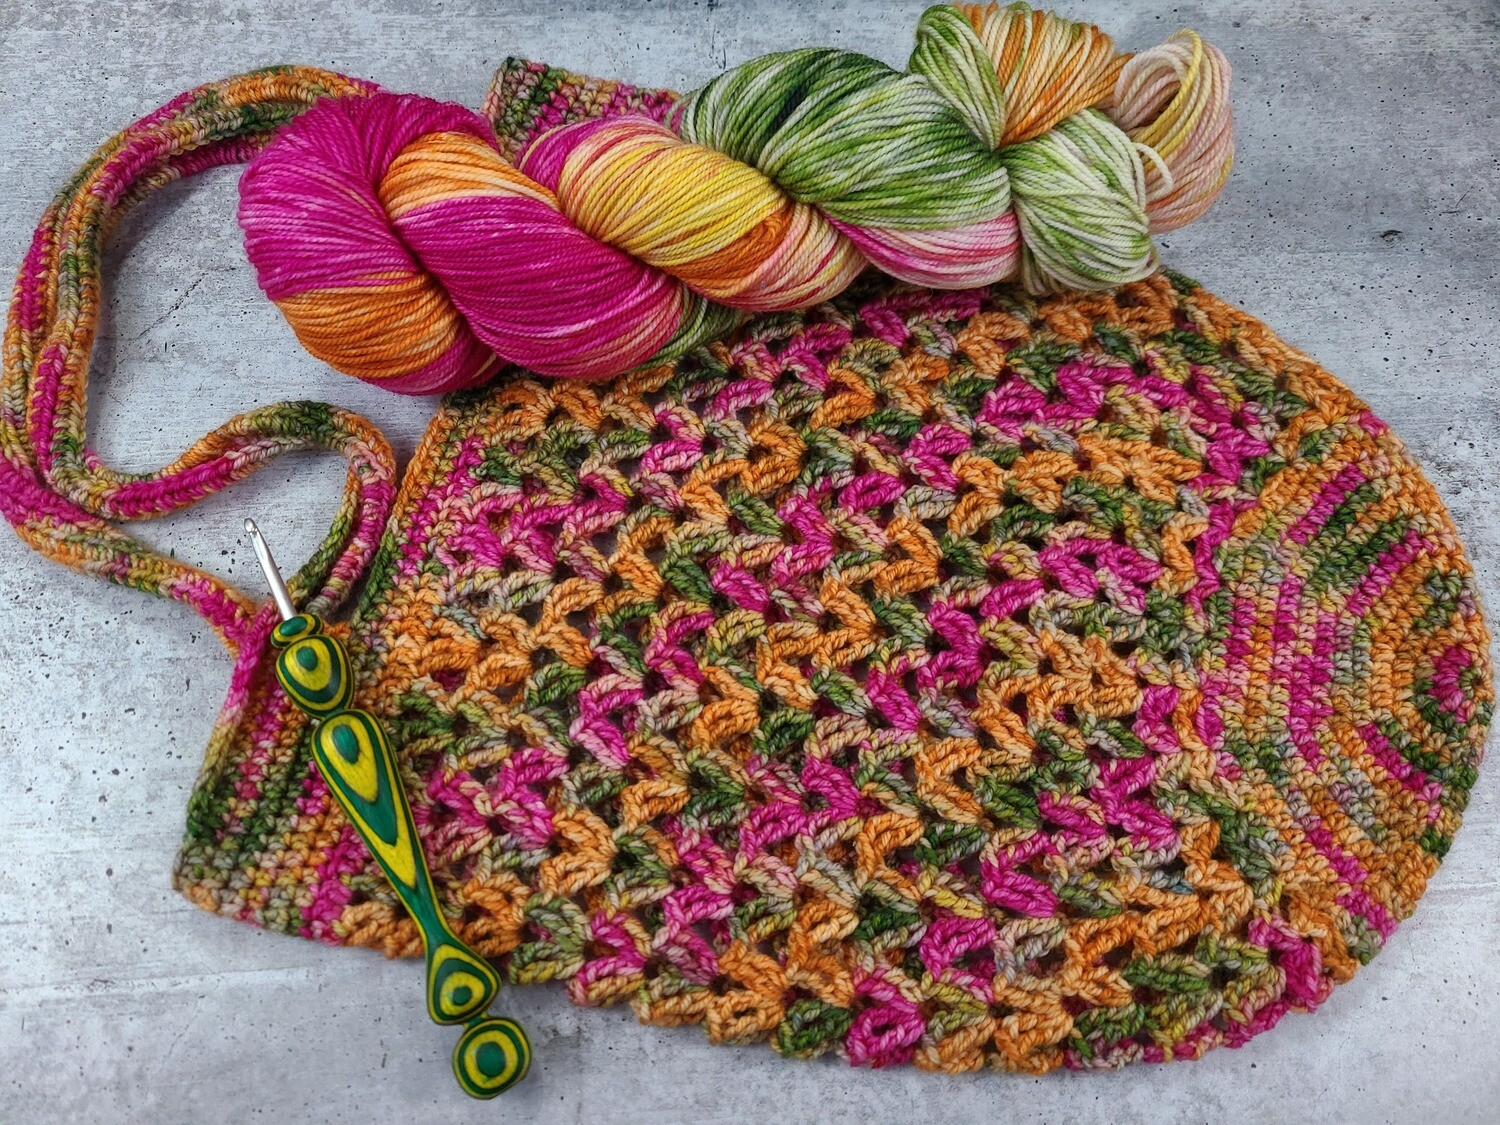 Tropical Market Bag Crochet Kit